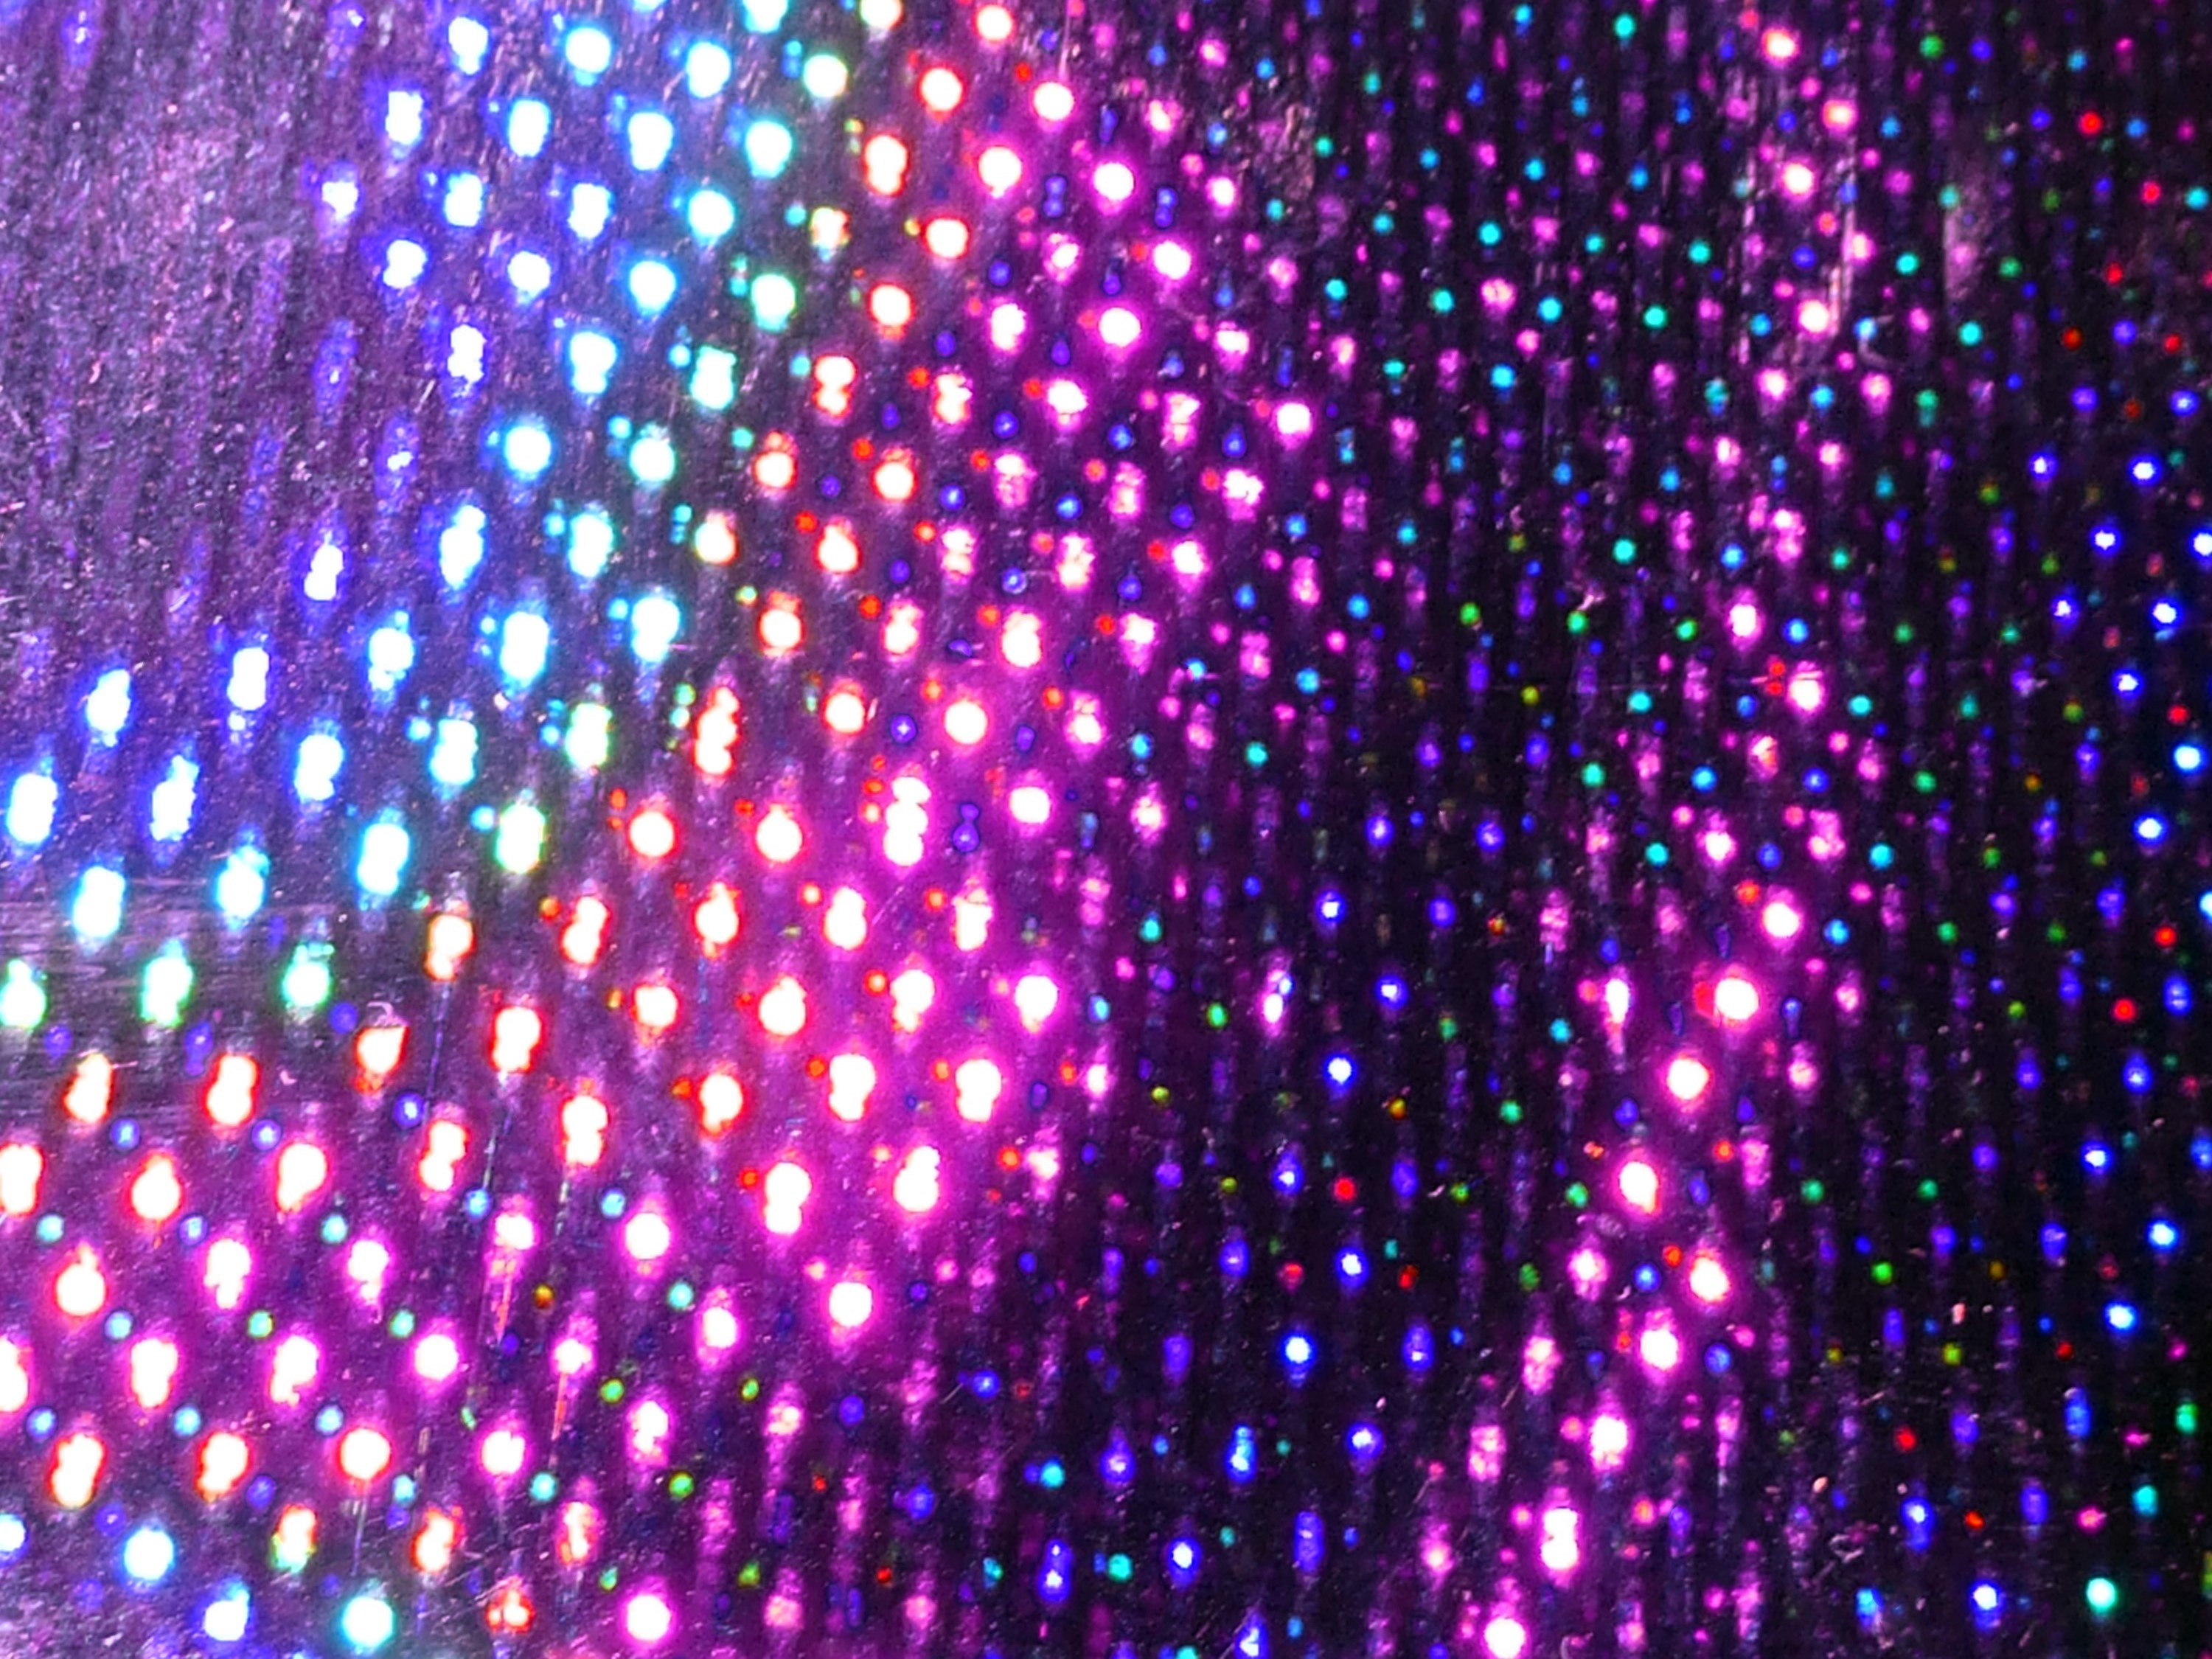 colorful party background with purple and magenta tones